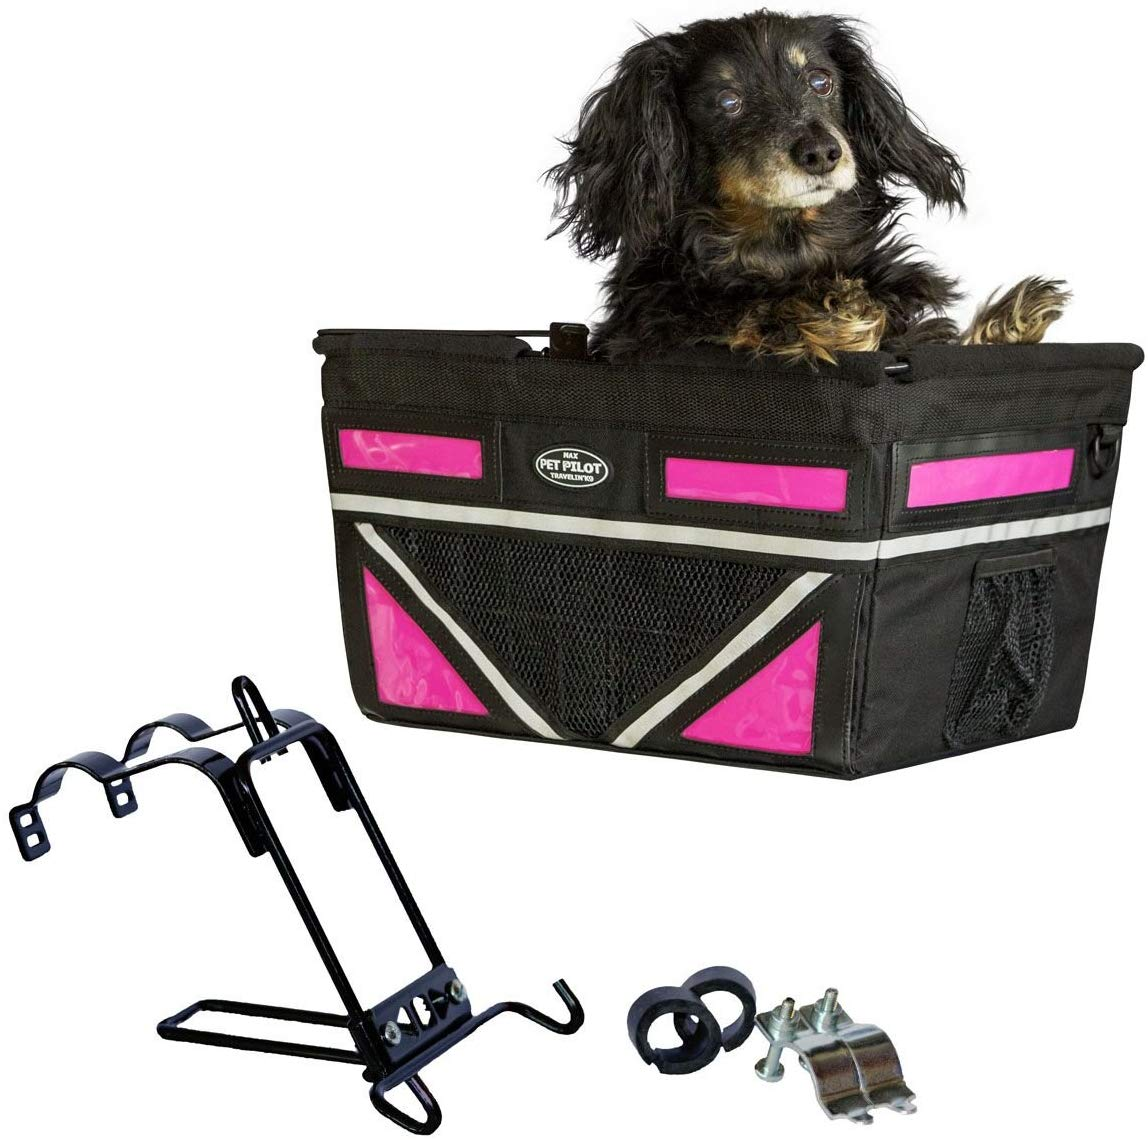 Travelin K9 2019 Pet-Pilot MAX Large Bike Basket for Dogs & Cats, Neon Pink